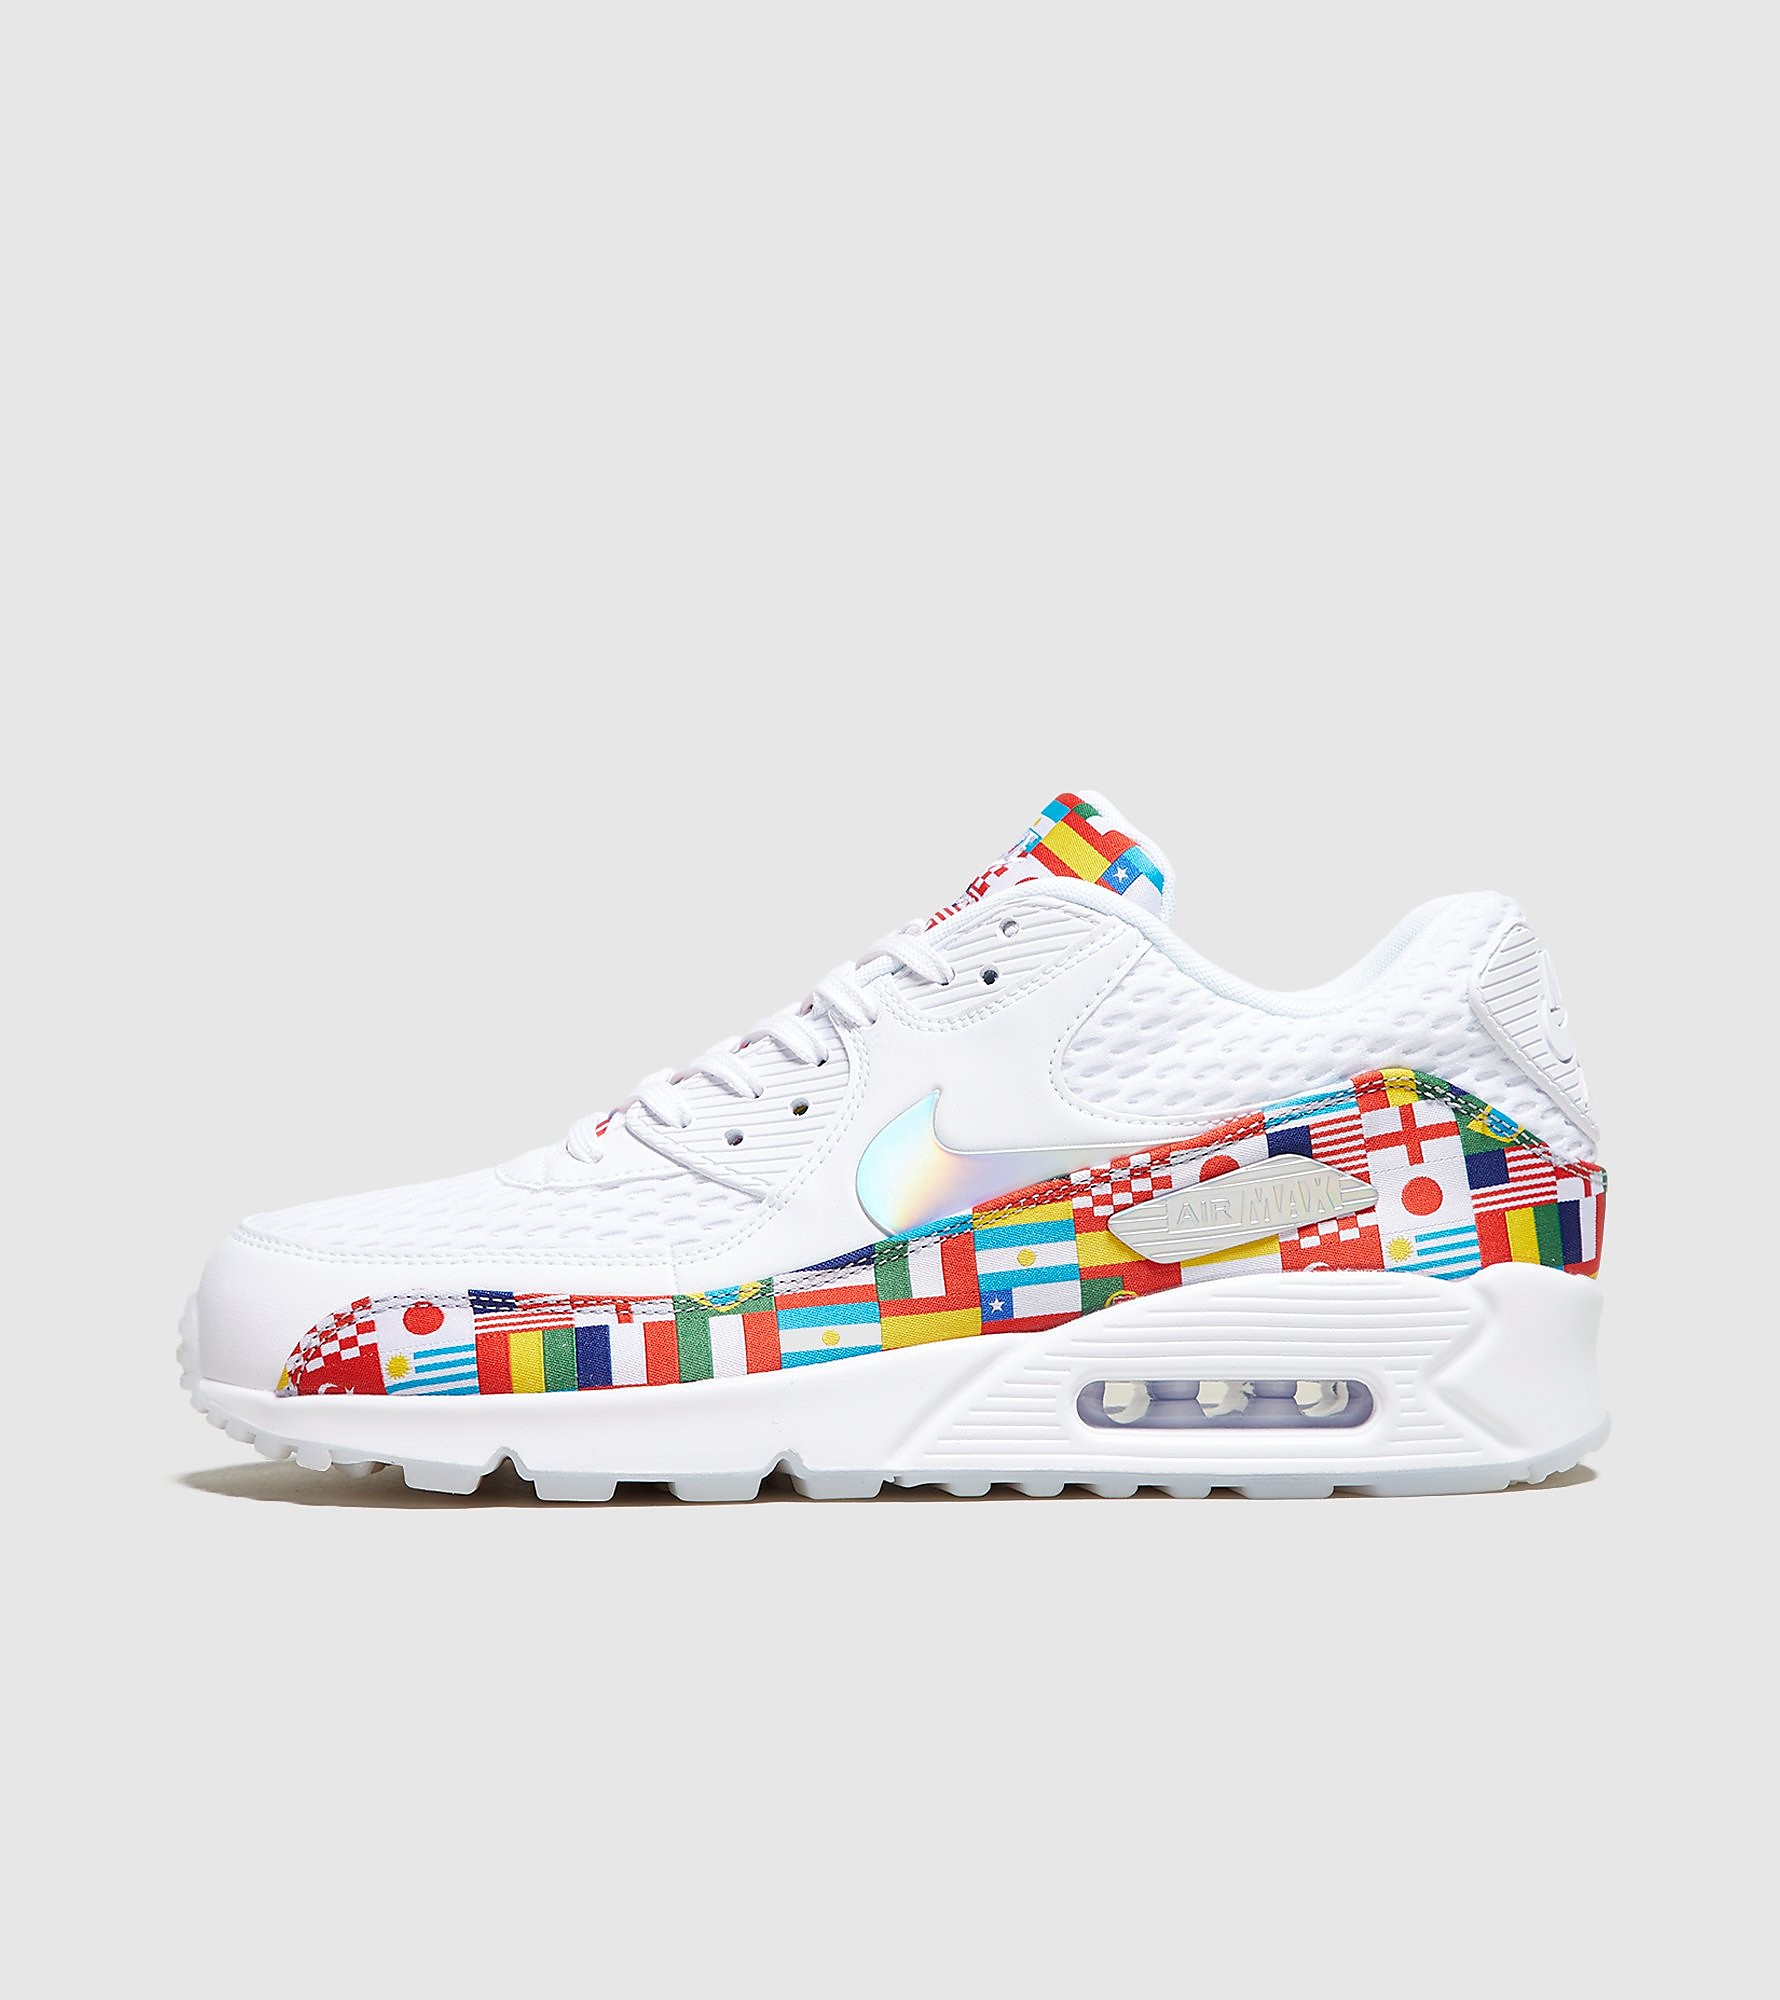 Nike Air Max 90 Nic, White Image